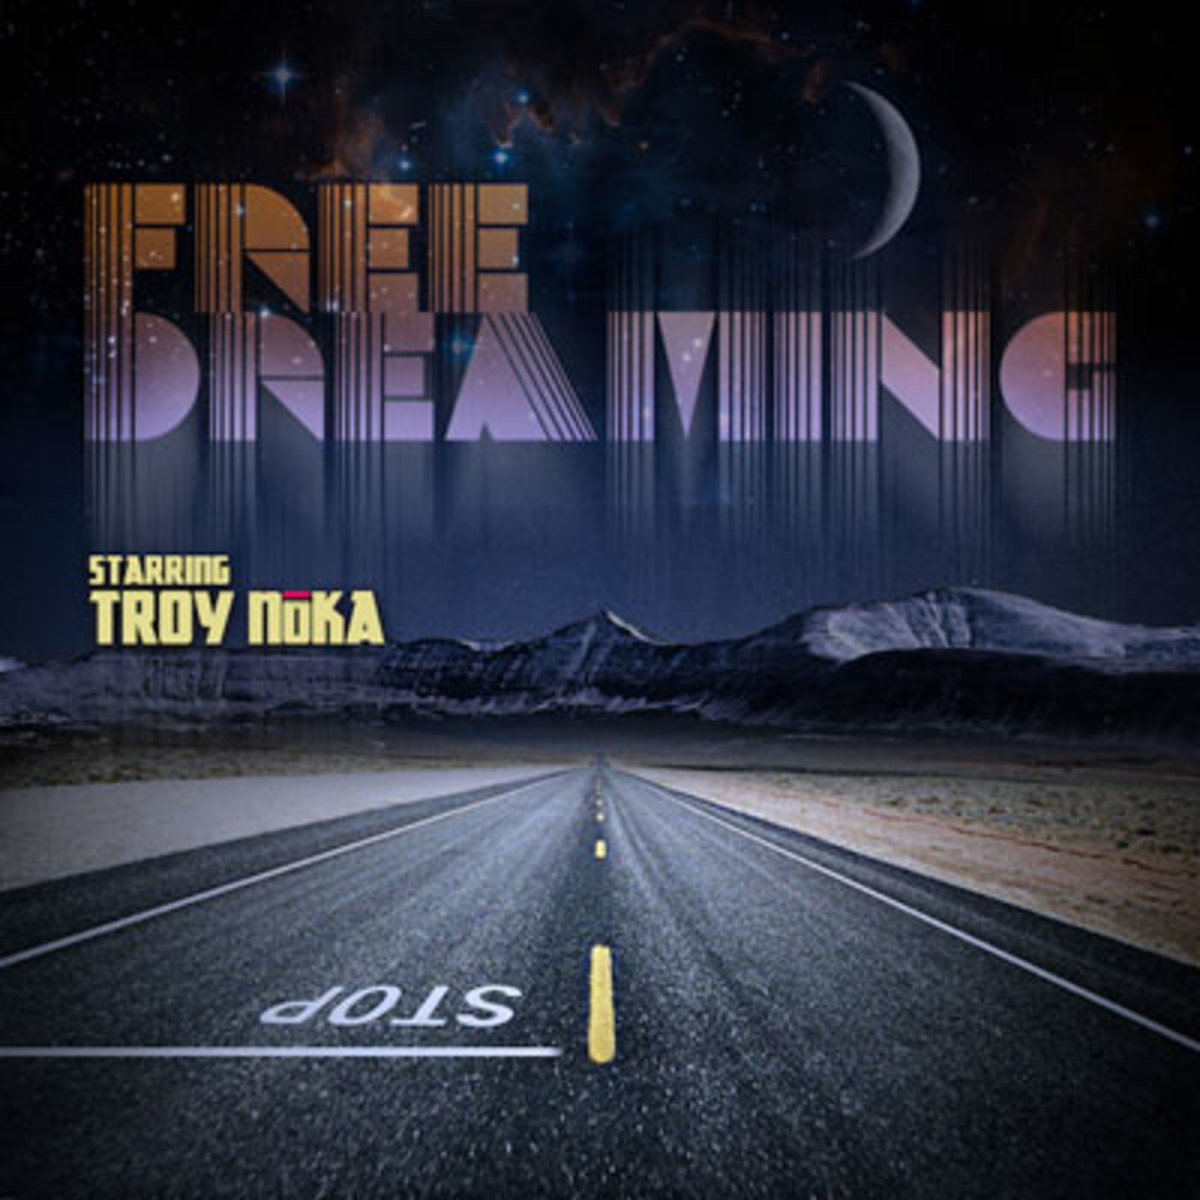 troynoka-freedreaming.jpg